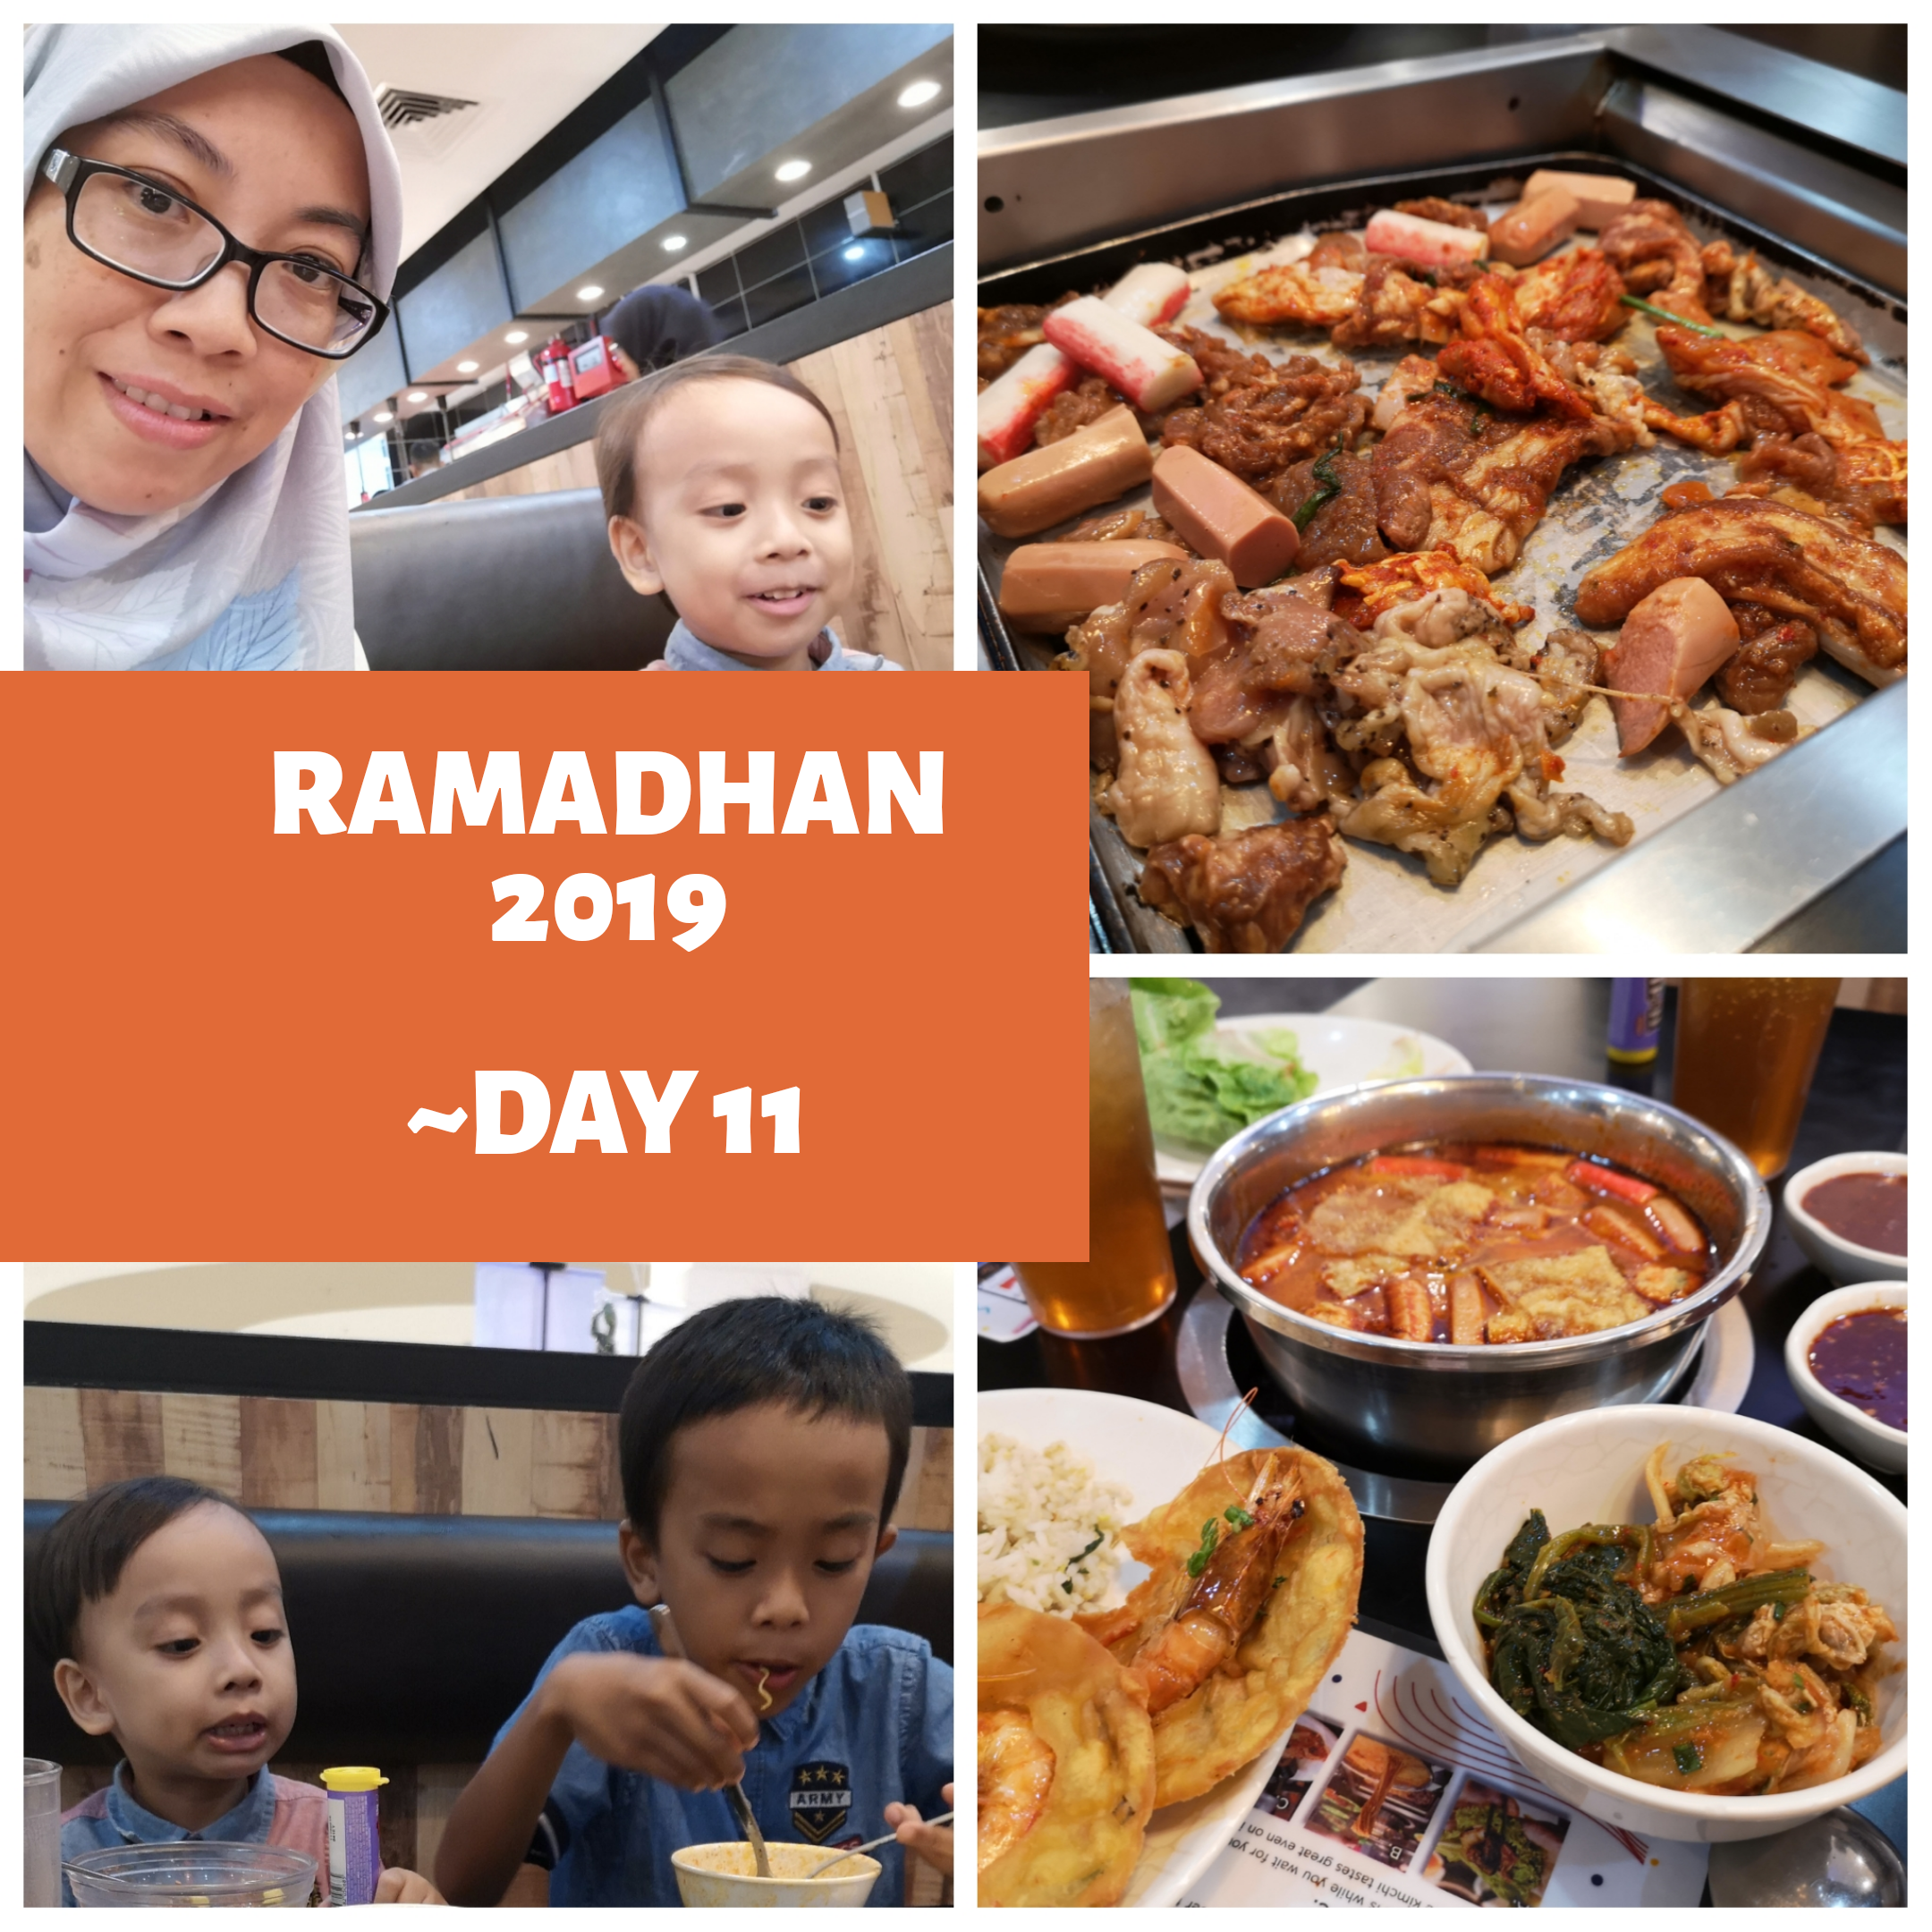 Ramadhan 2019 – Day 11